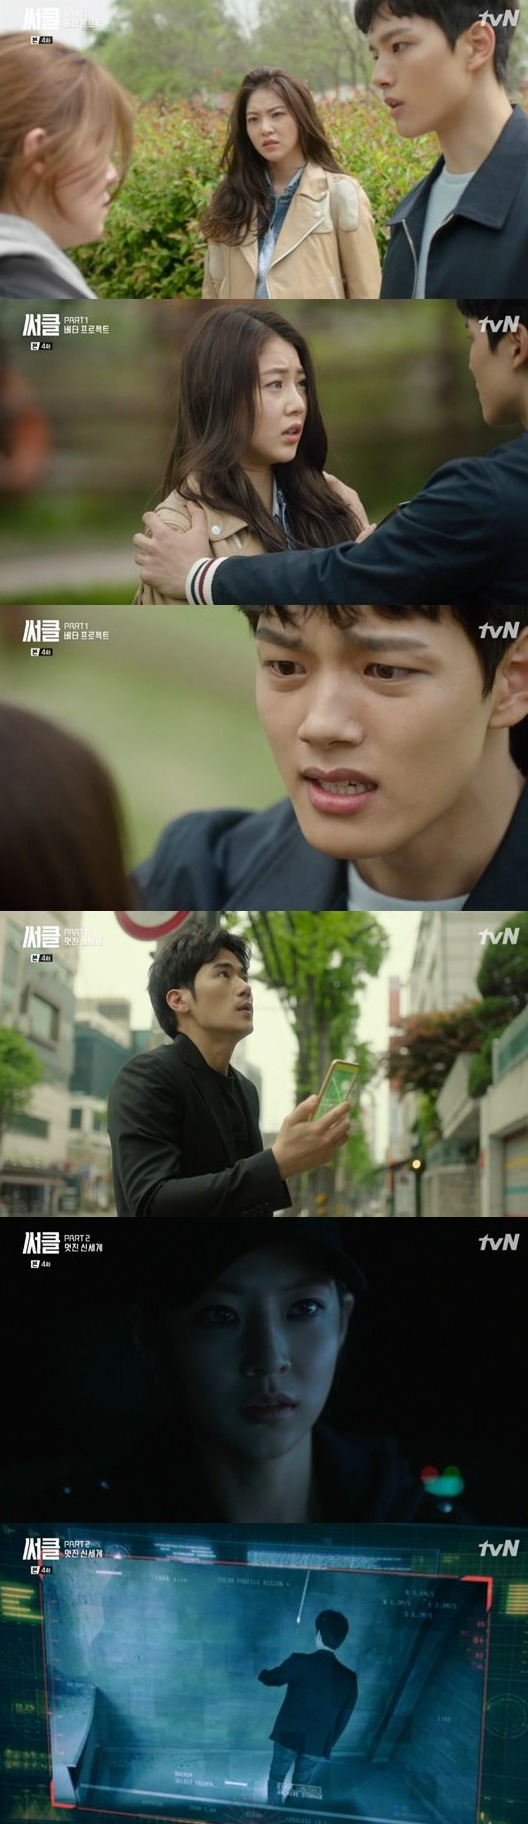 [Spoiler] Added episode 4 captures for the Korean drama 'Circle'